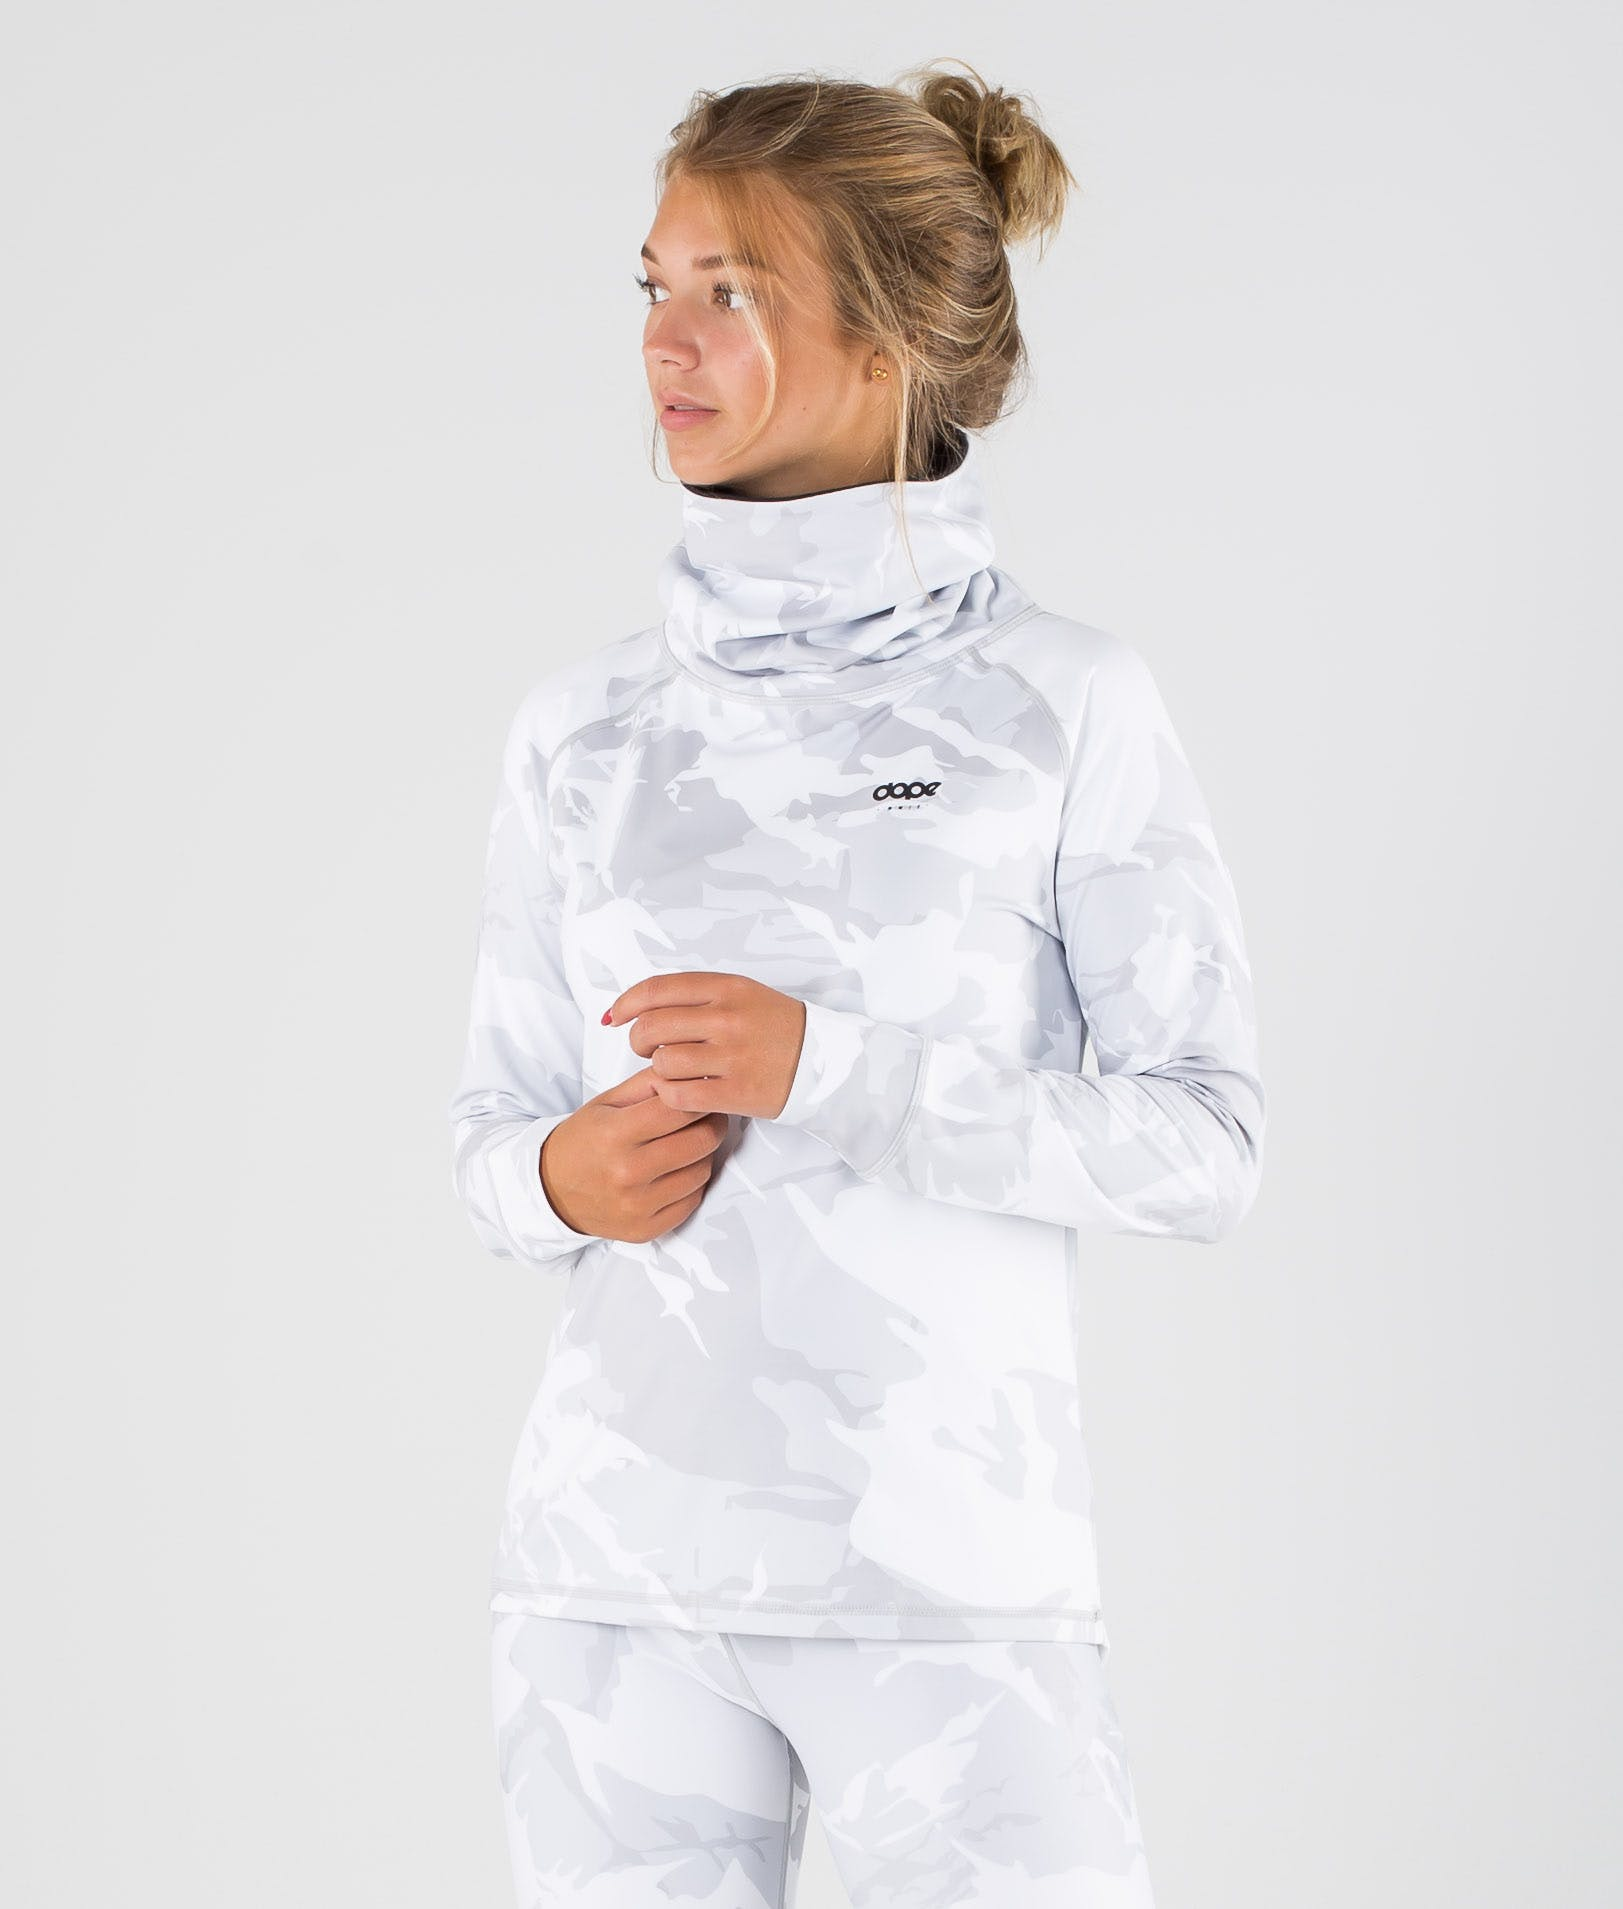 What does a base layer entail for hiking